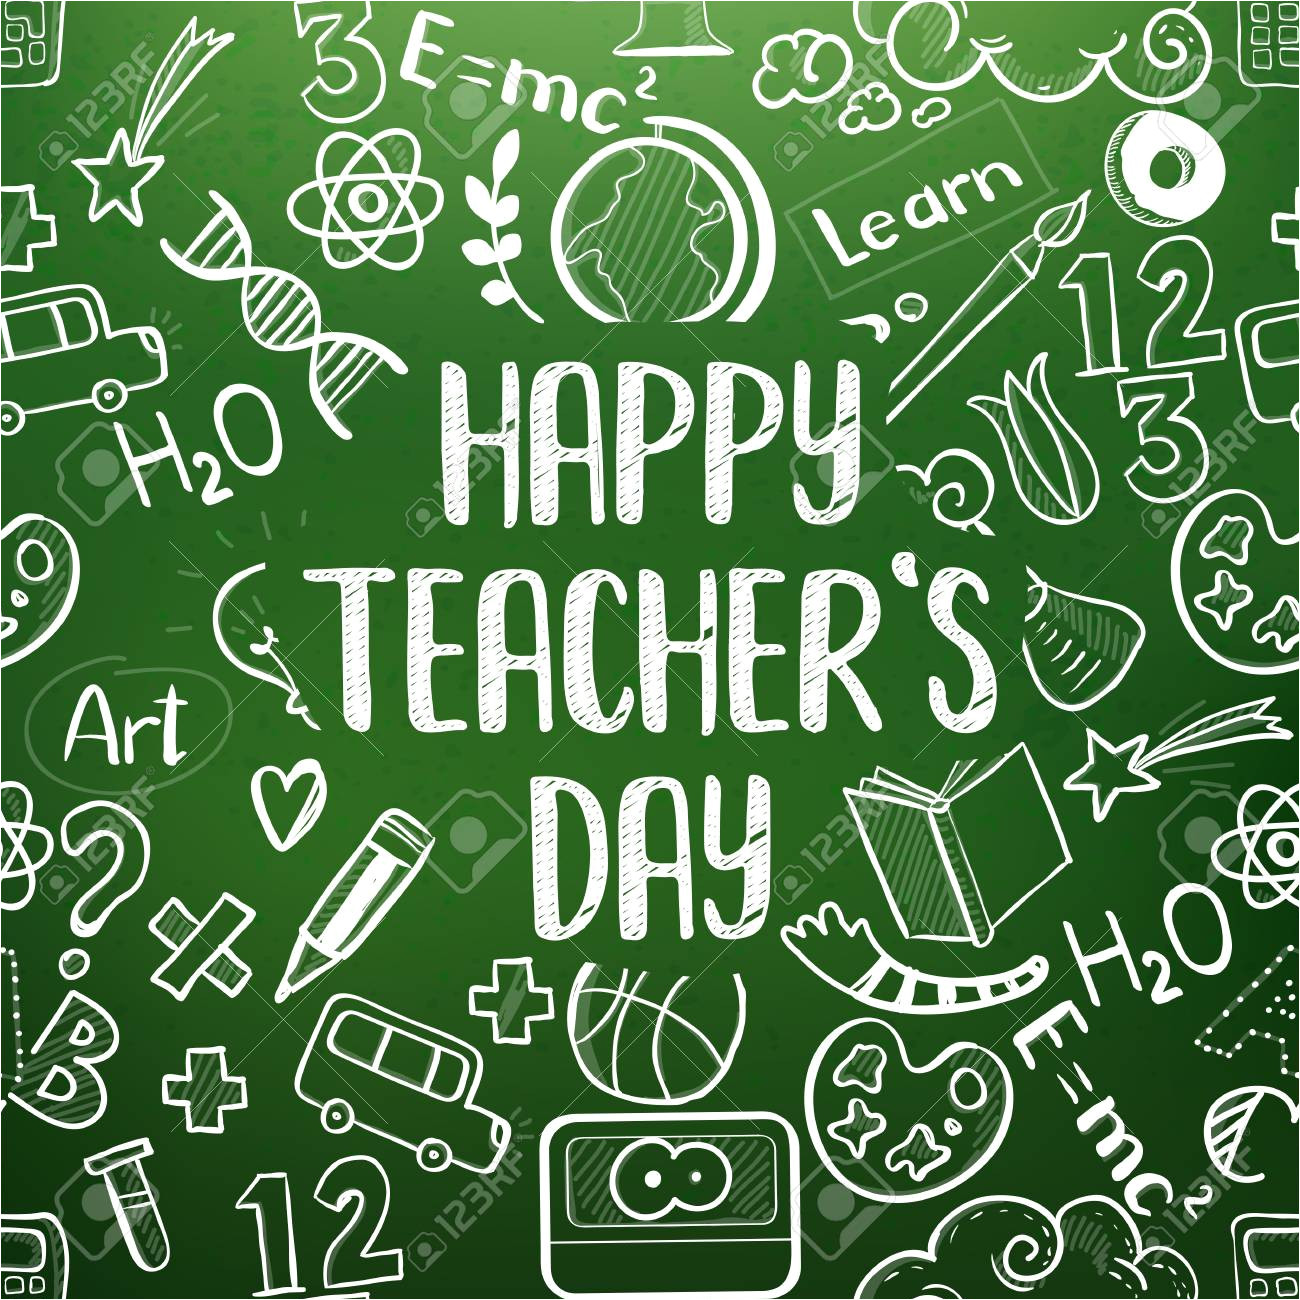 100315143 happy teacher s day greeting on school realistic green chalkboard doodle icons frame jpg